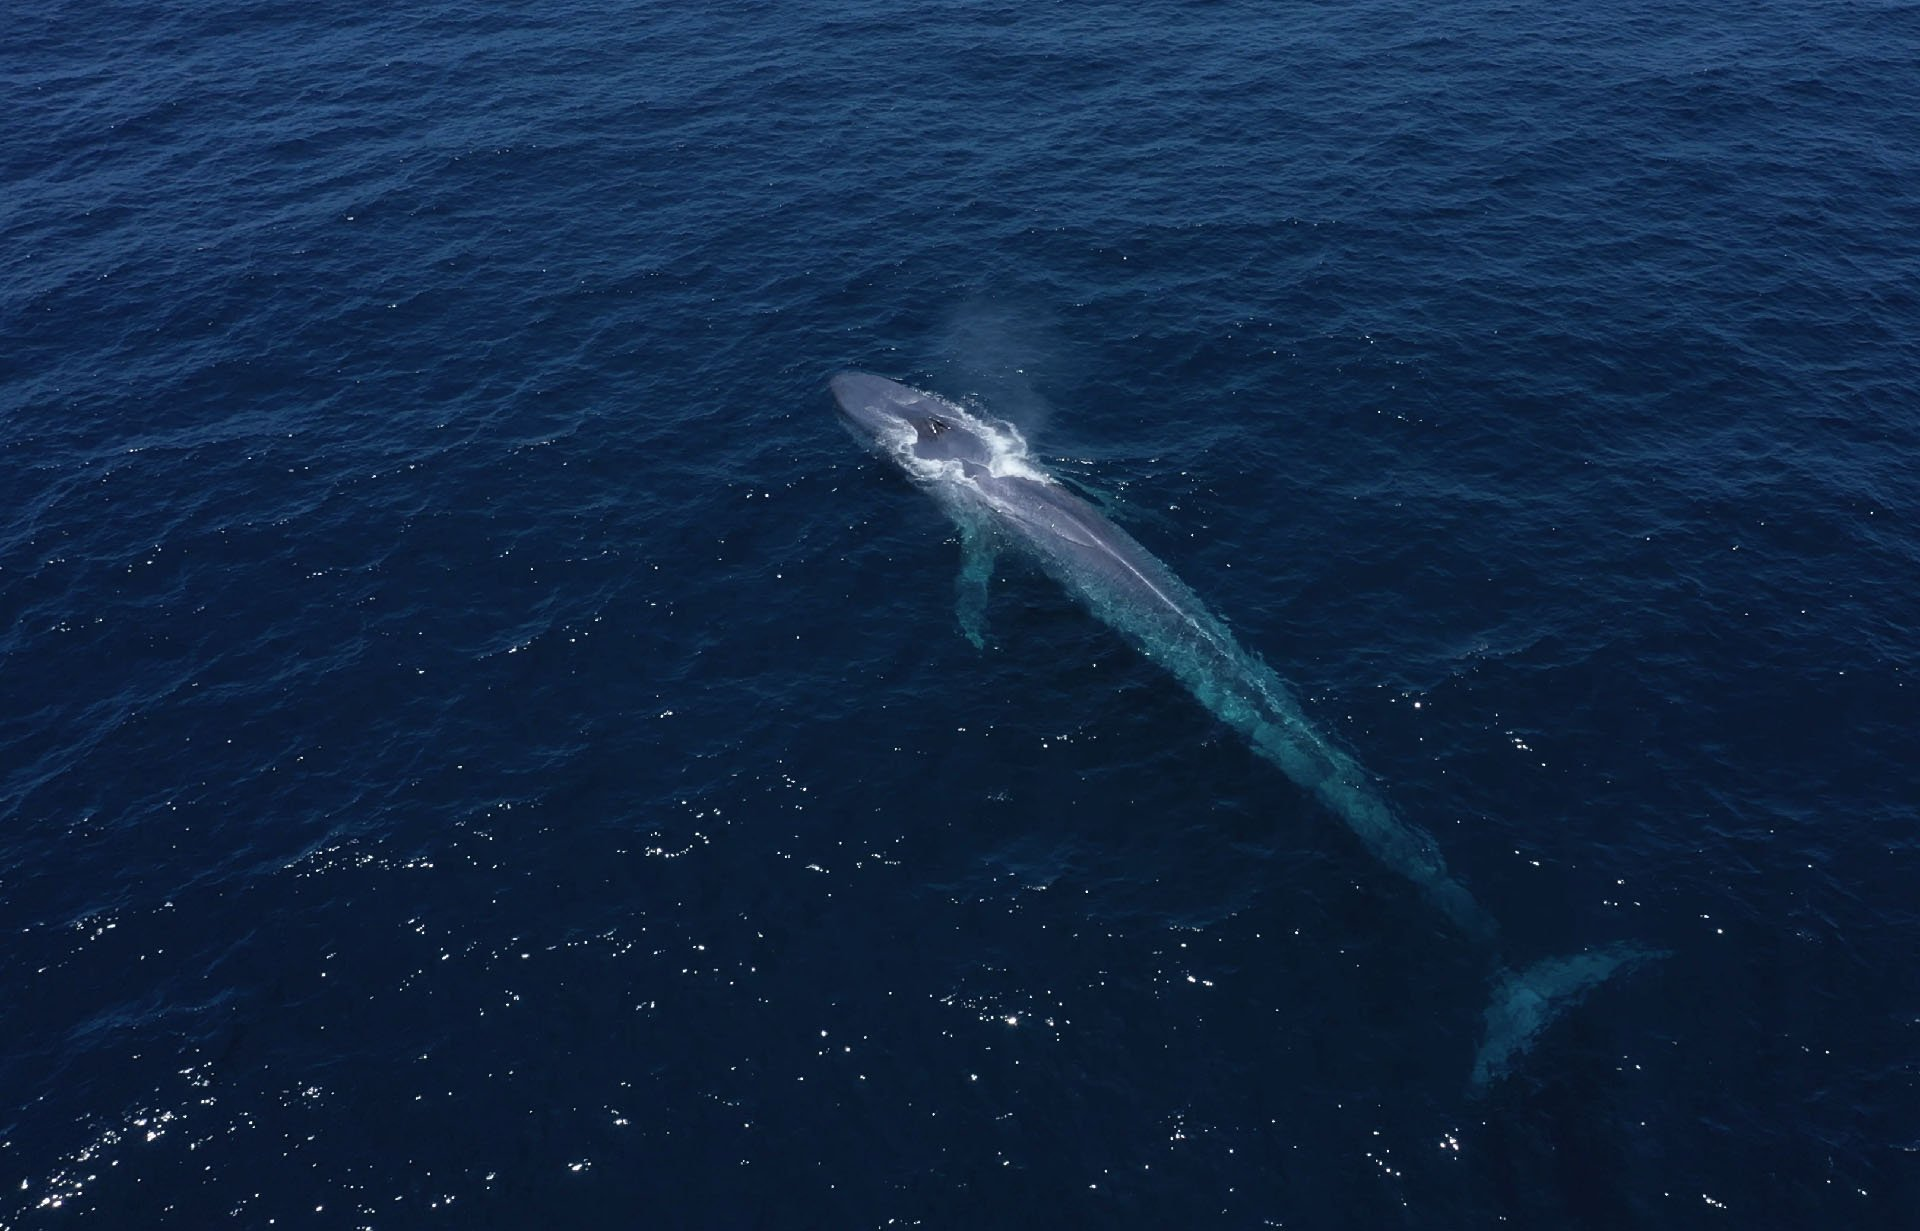 Aerial view of Blue Whale